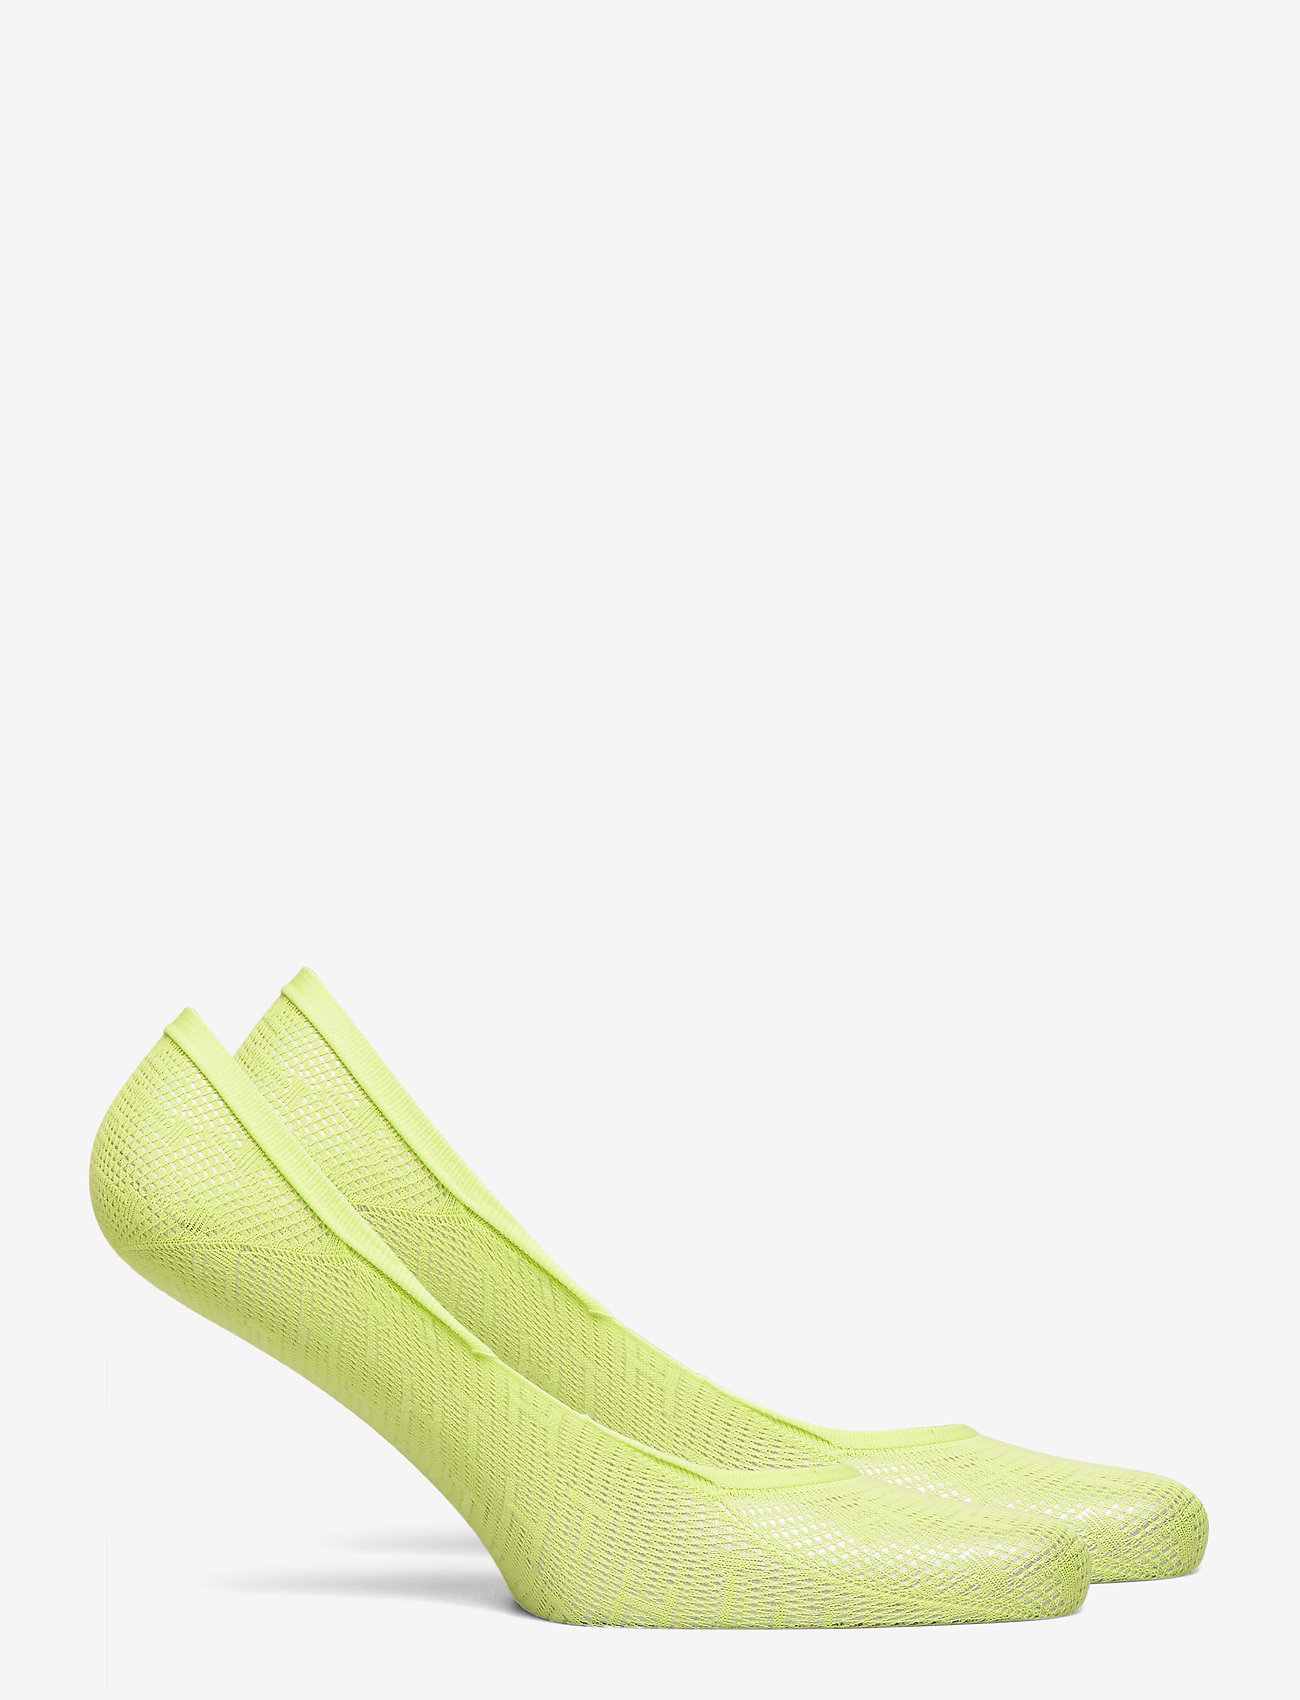 Tommy Hilfiger - TH WOMEN FOOTIE 2P TH BURN OUT - footies - lime - 1